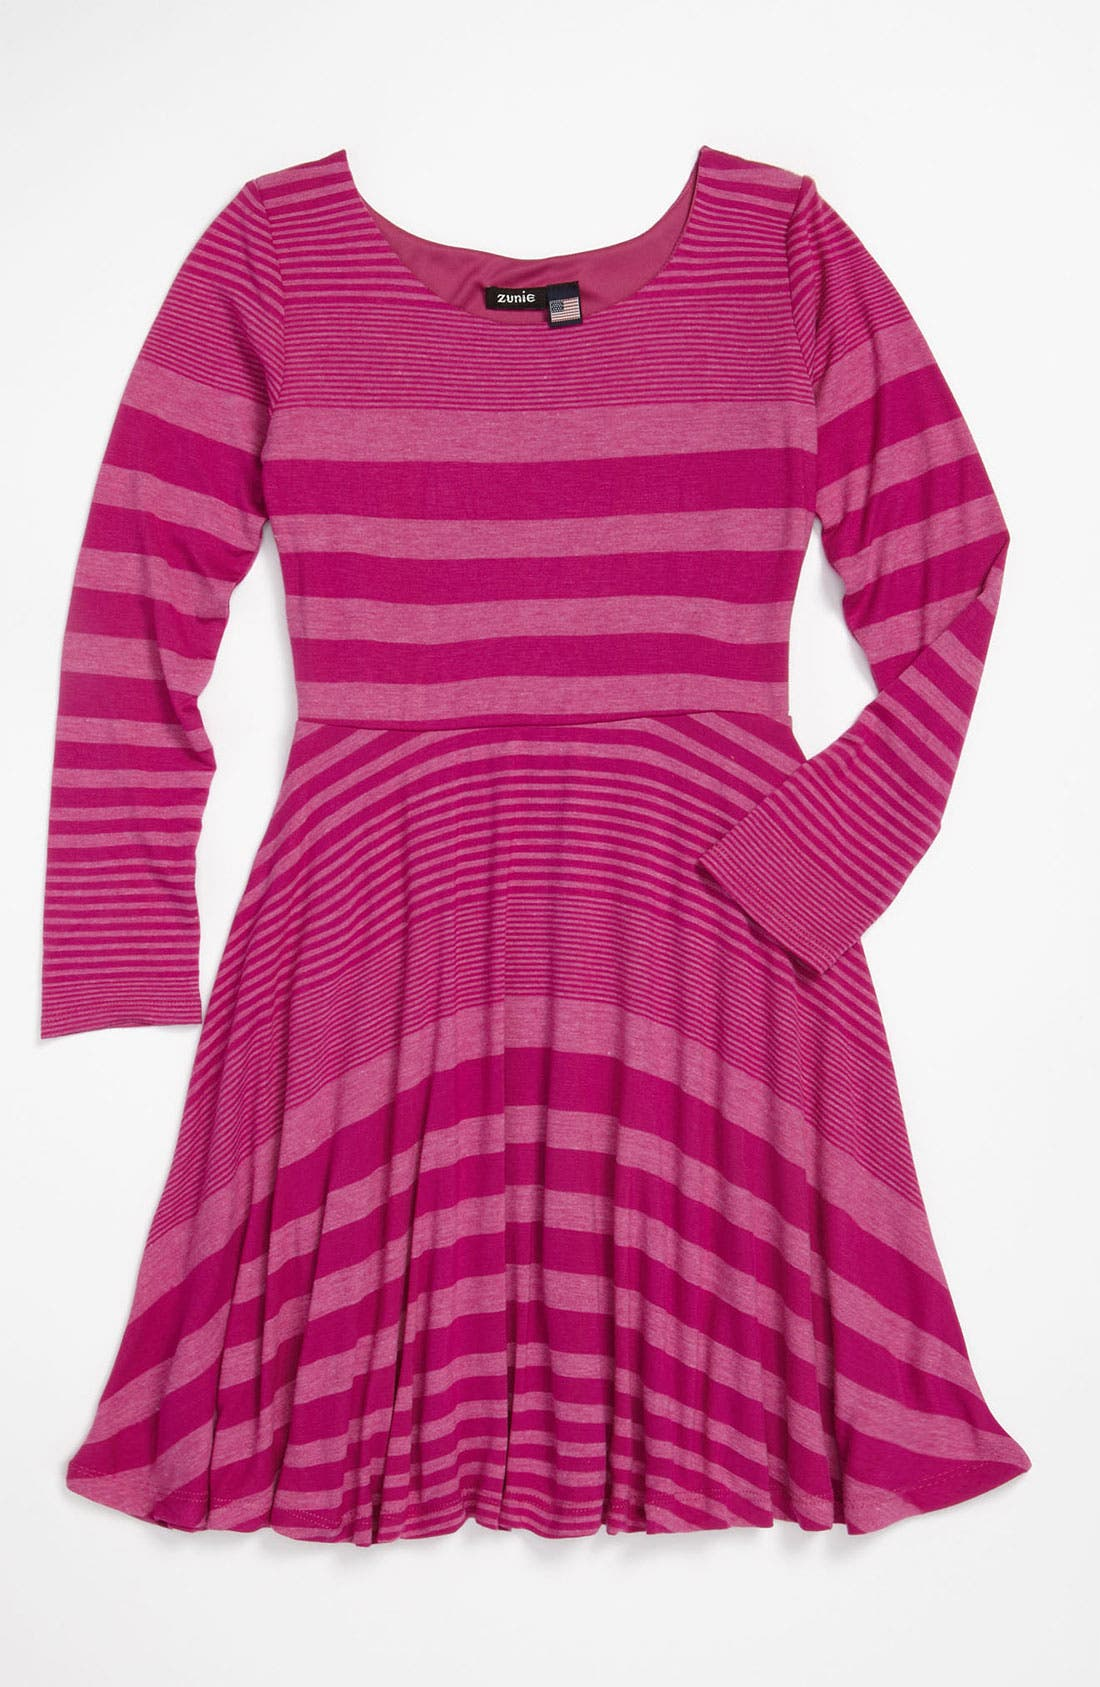 Main Image - Zunie Stripe Knit Dress (Little Girls & Big Girls)